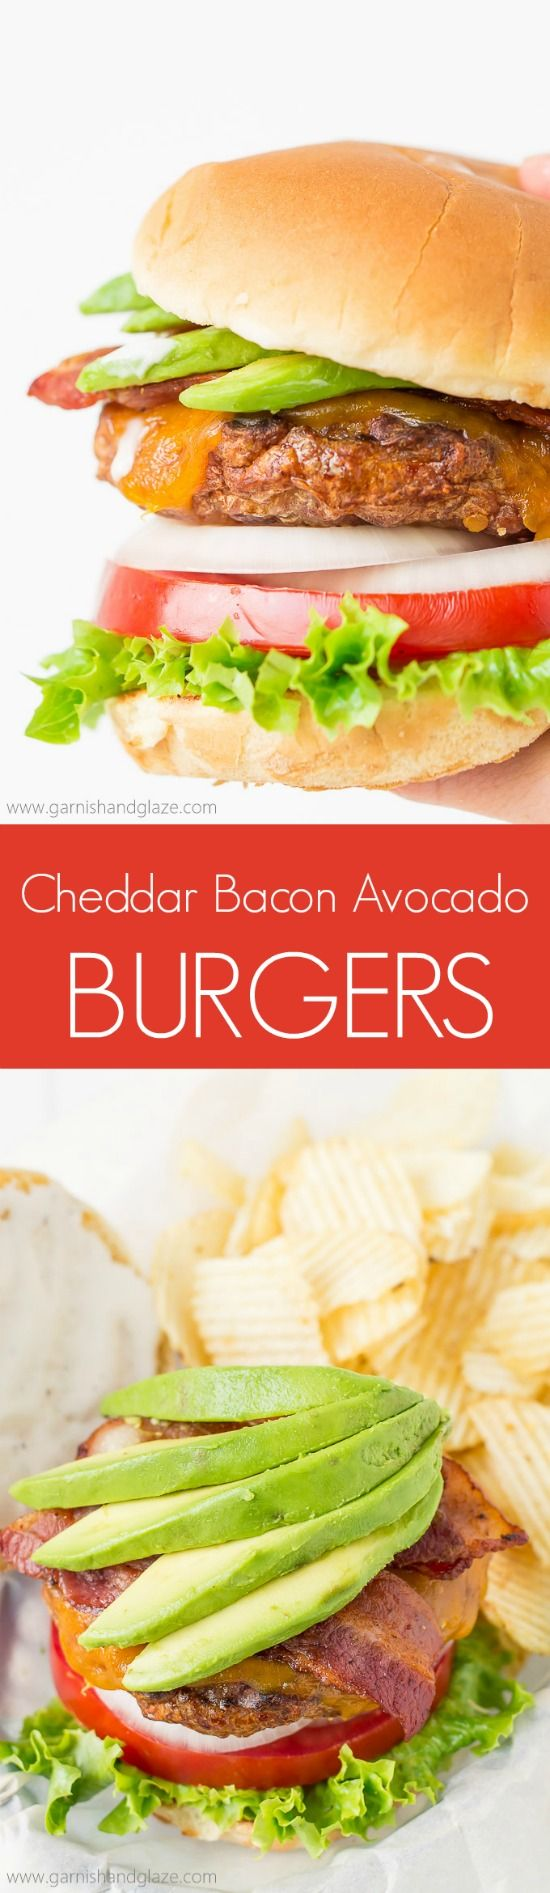 Fire up the grill and celebrate National Burger Day with these flavor packed Cheddar Bacon Avocado Burgers! @jvillesausage #ad